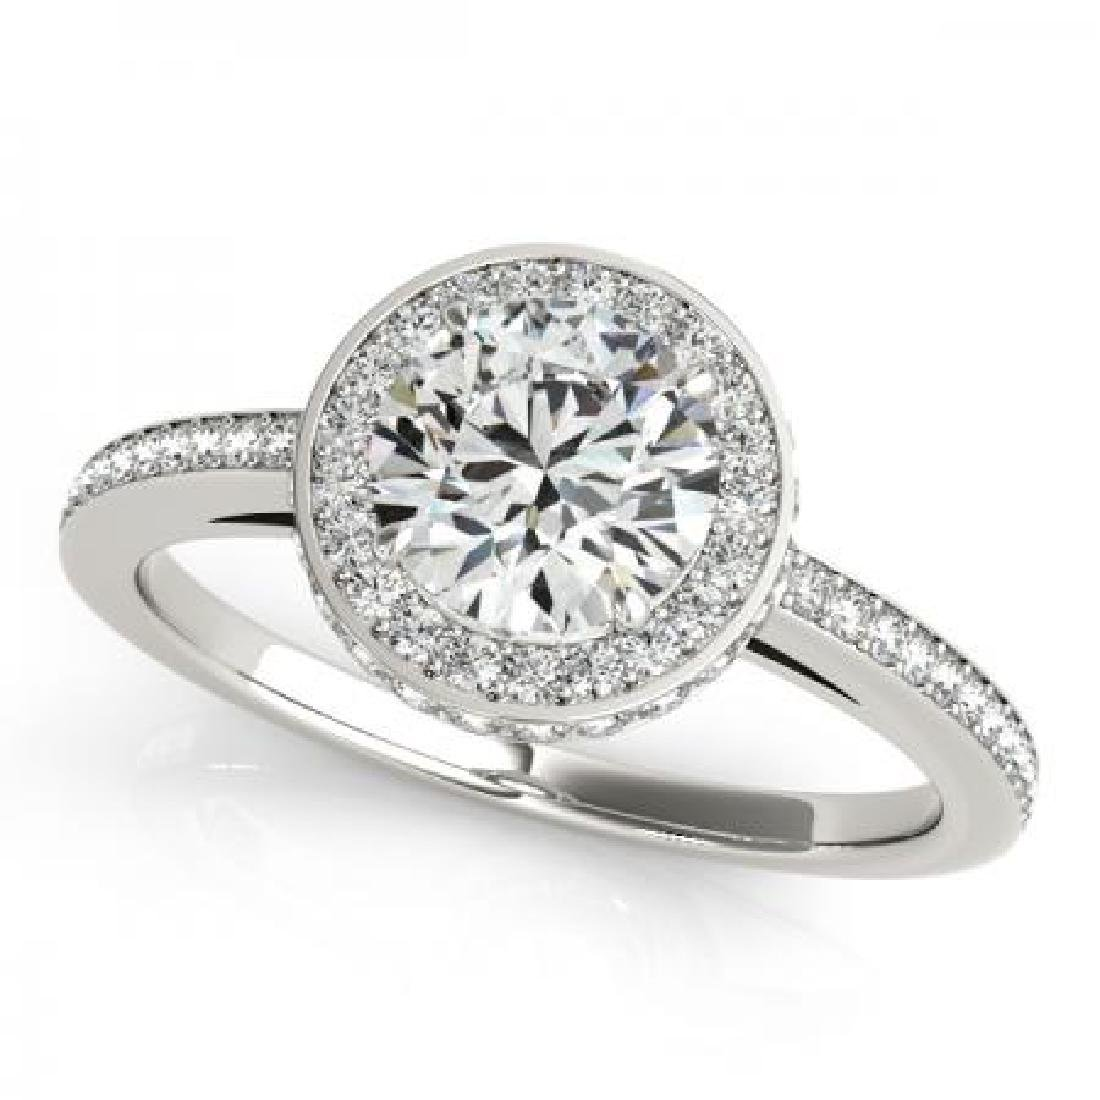 CERTIFIED PLATINUM 1.46 CT G-H/VS-SI1 DIAMOND HALO ENGA